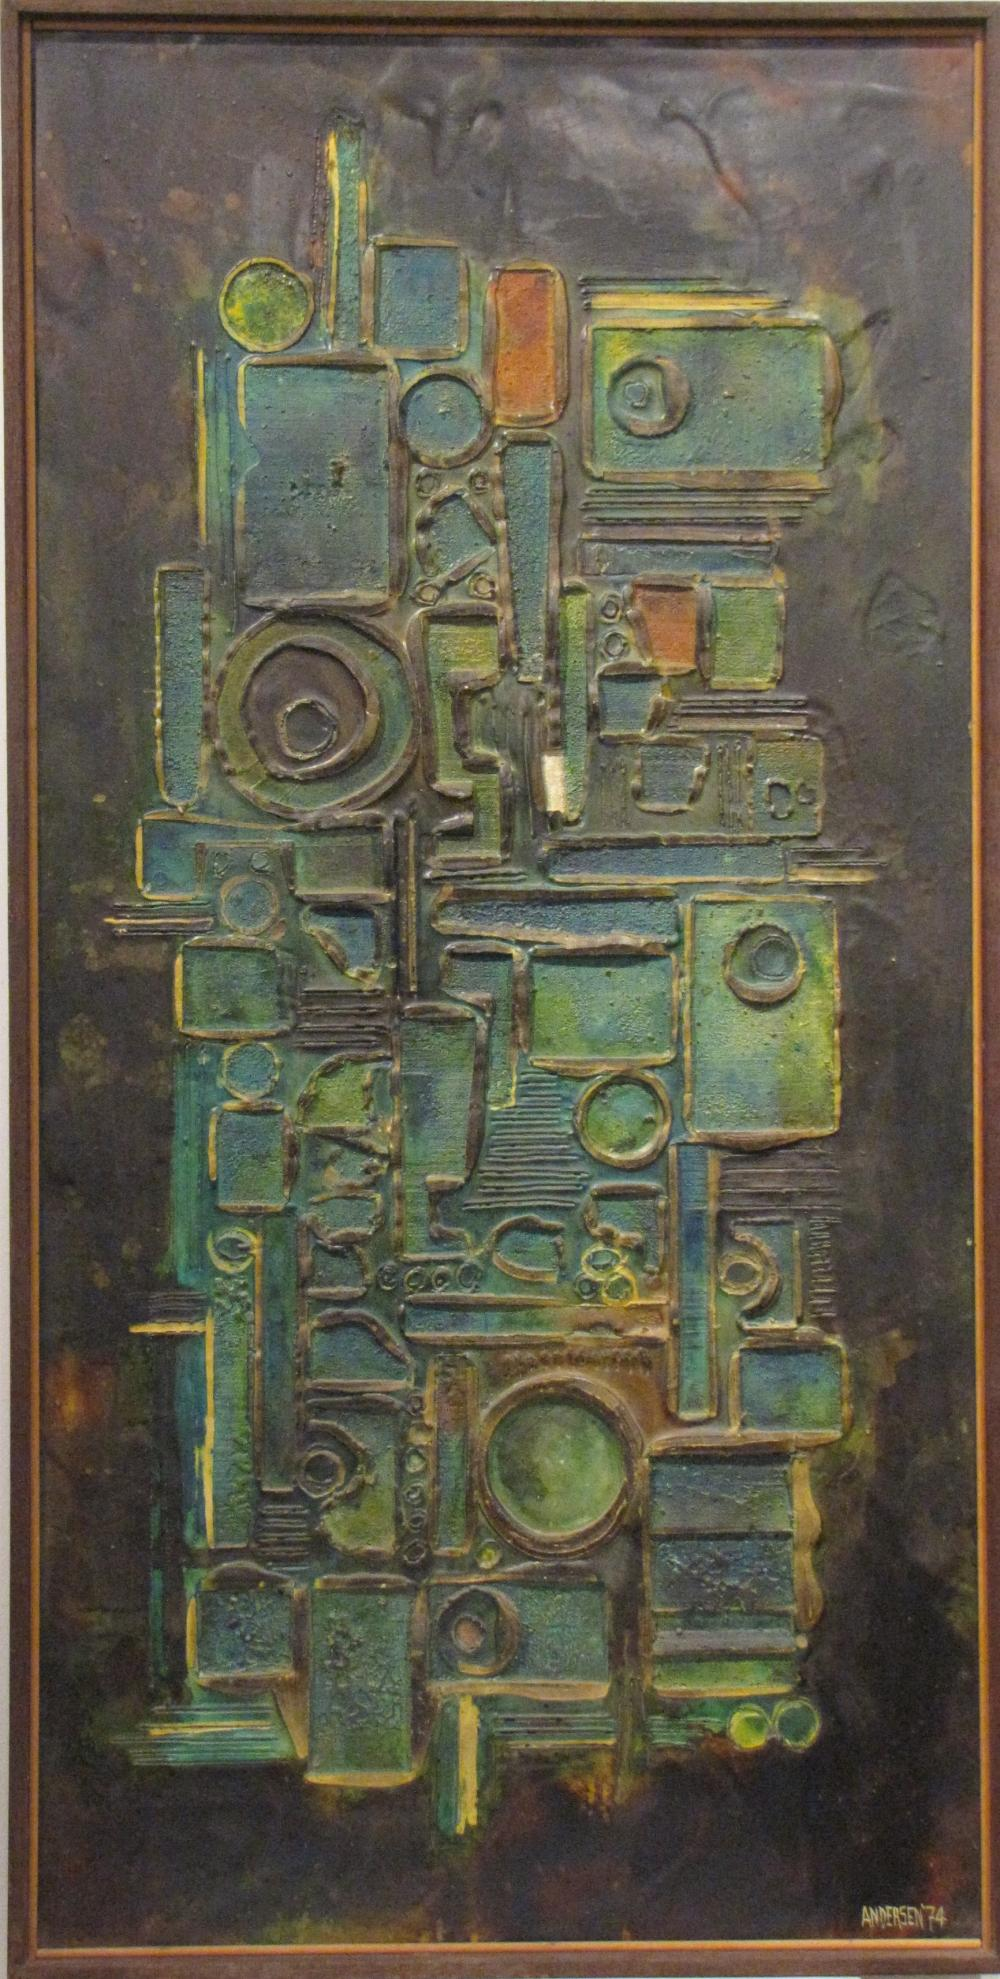 Tom Anderson Artwork For Sale At Online Auction Tom Anderson Biography Info